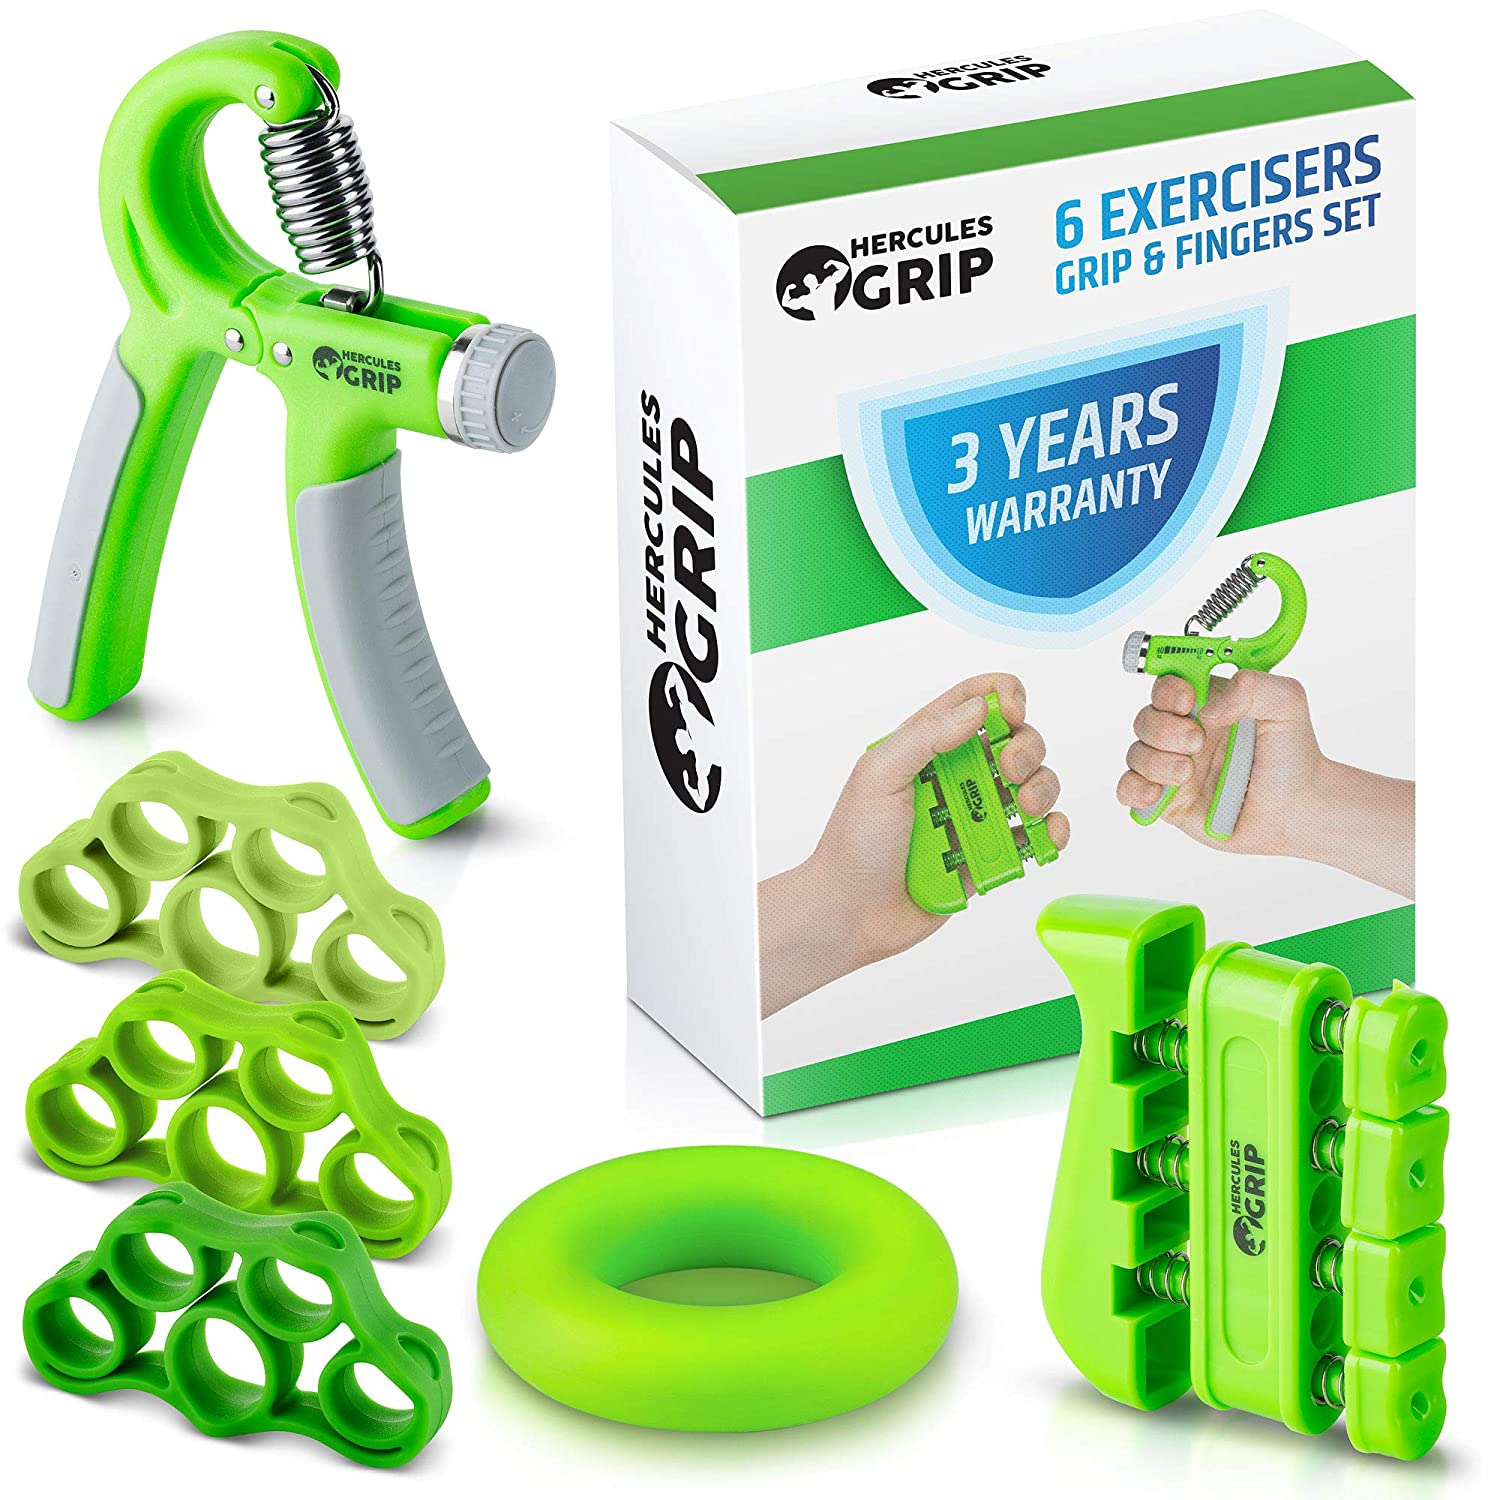 HerculesGrip Hand Grip Strengthener Forearm Grip Workout Kit – 4 Pack – Adjustable Hand Gripper Resistance Range of 22-88lbs, Finger Exerciser, Finger Stretcher Exercise Ring HD Video Manual